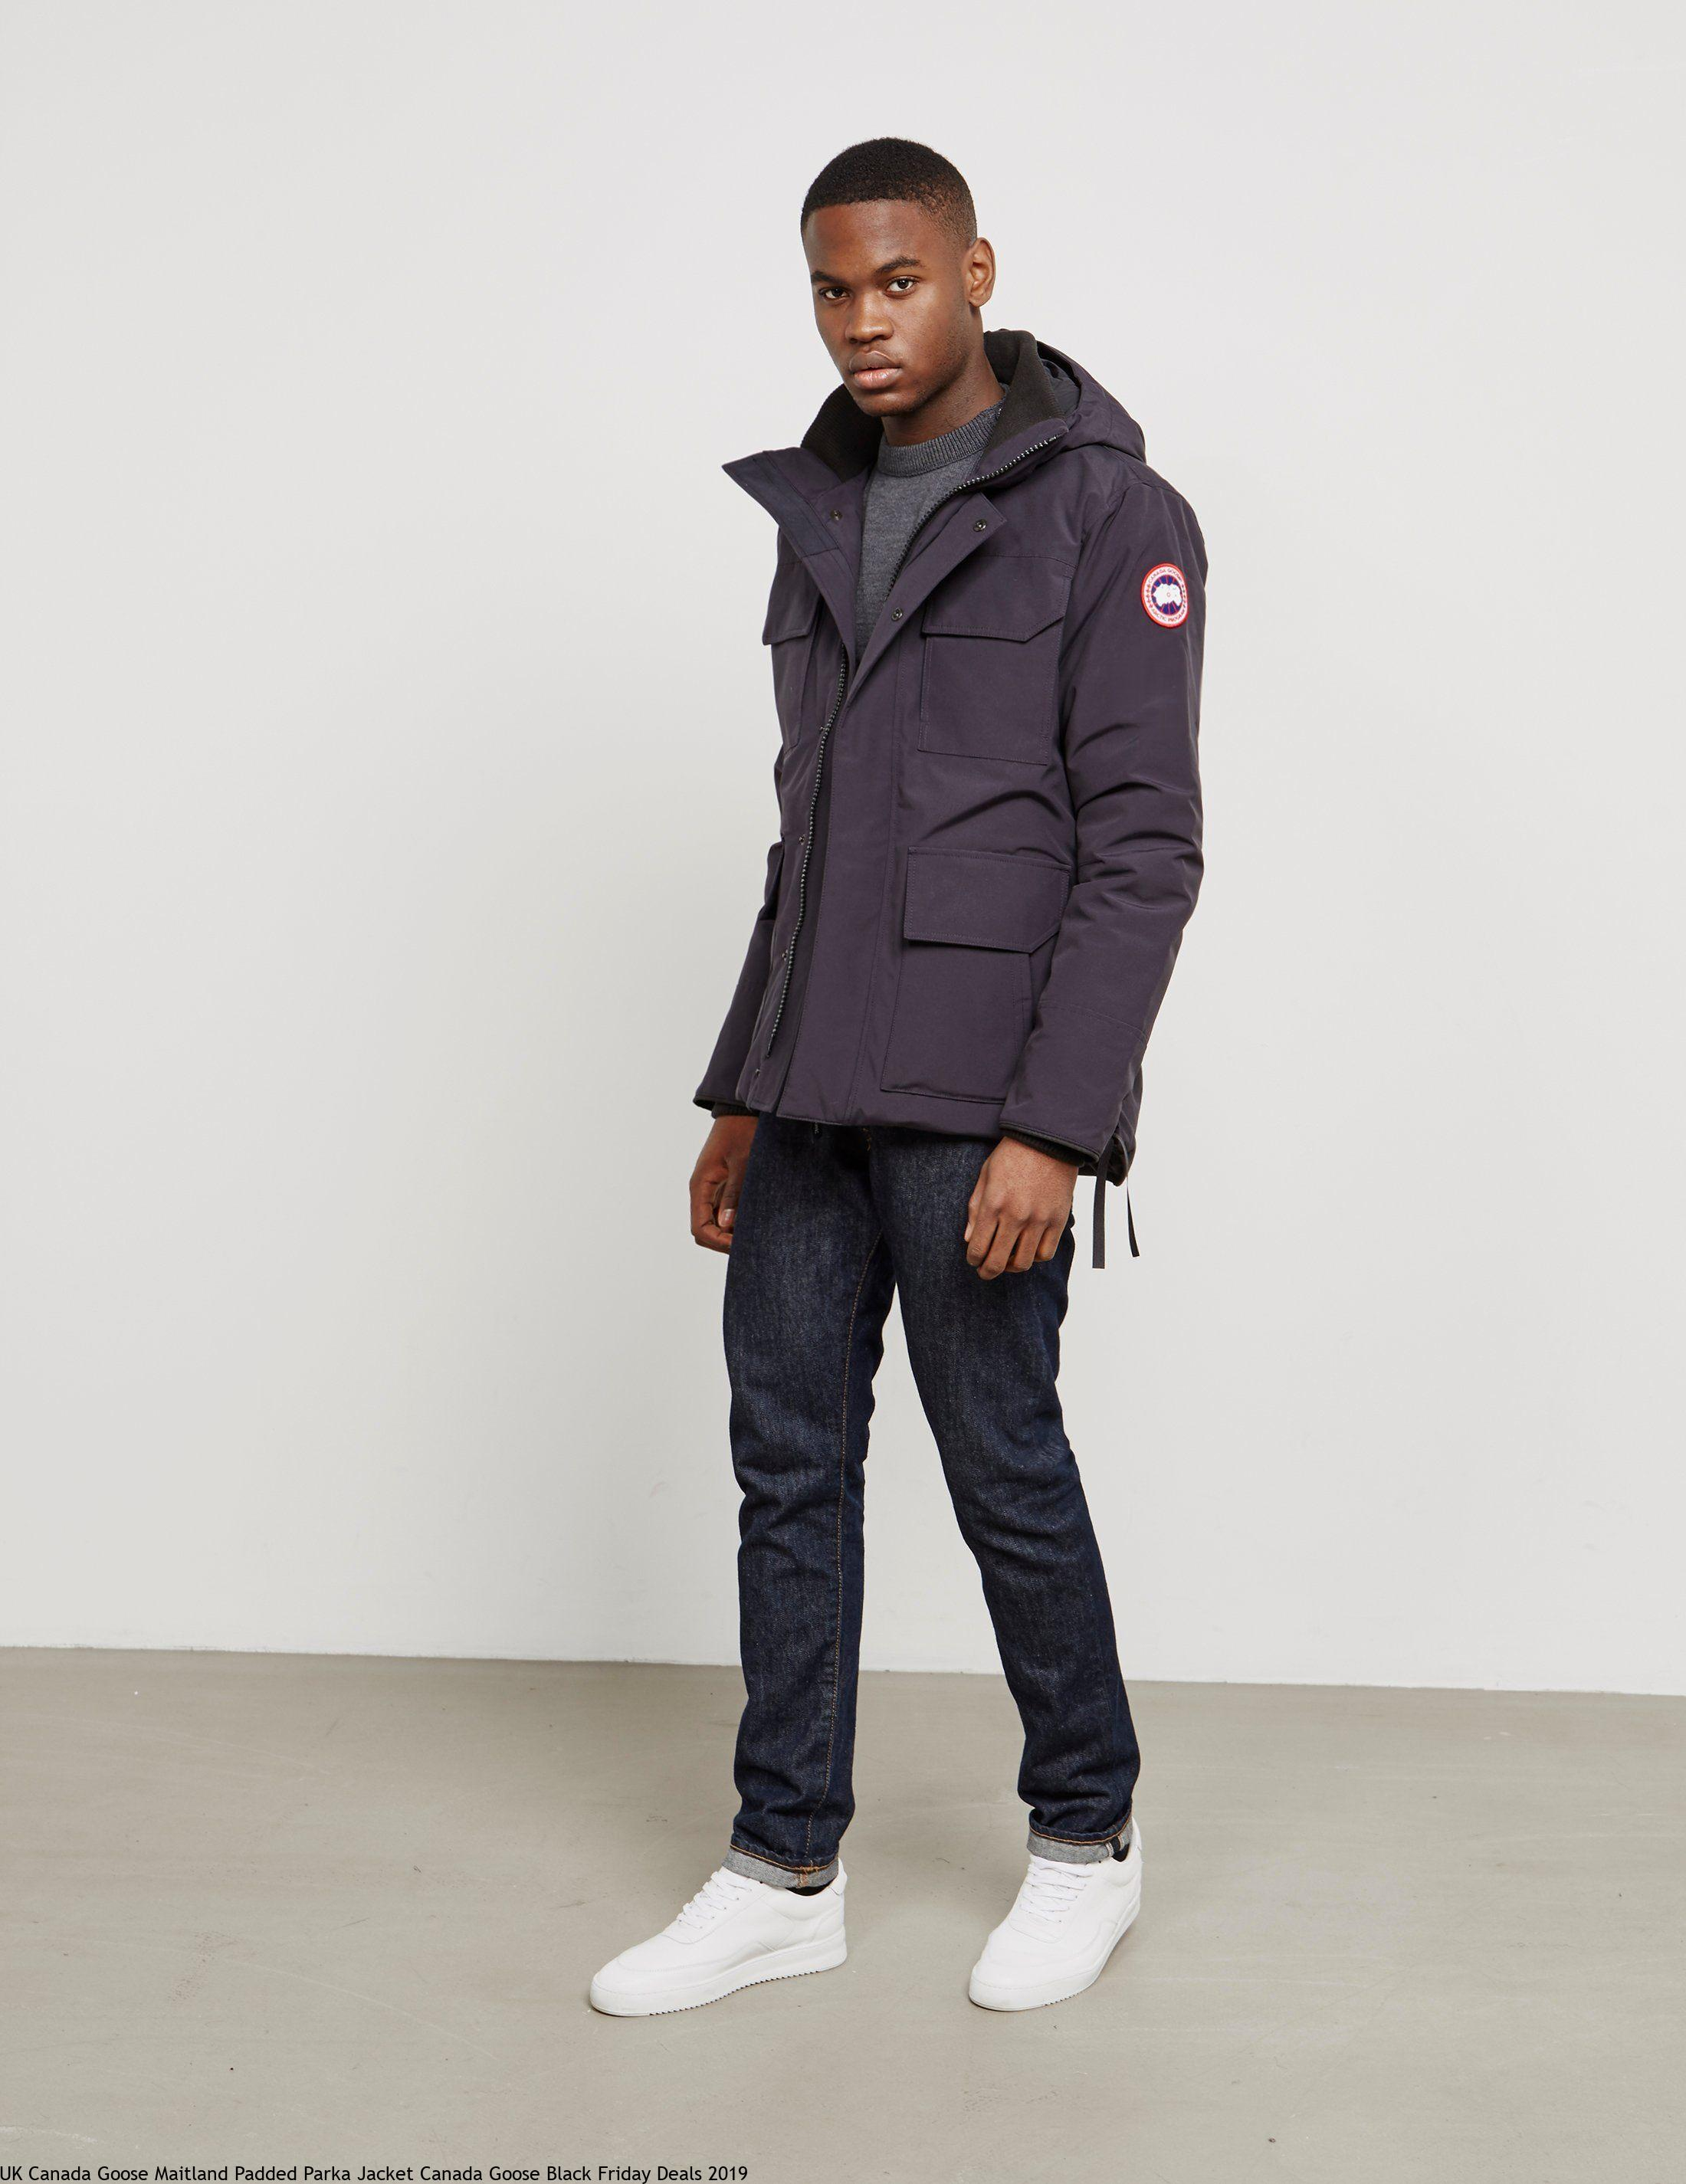 6cf0d14ab82 UK Canada Goose Maitland Padded Parka Jacket Canada Goose Black Friday  Deals 2019 – Canada Goose Outlet Sale: Cheap Canada Goose Jackets